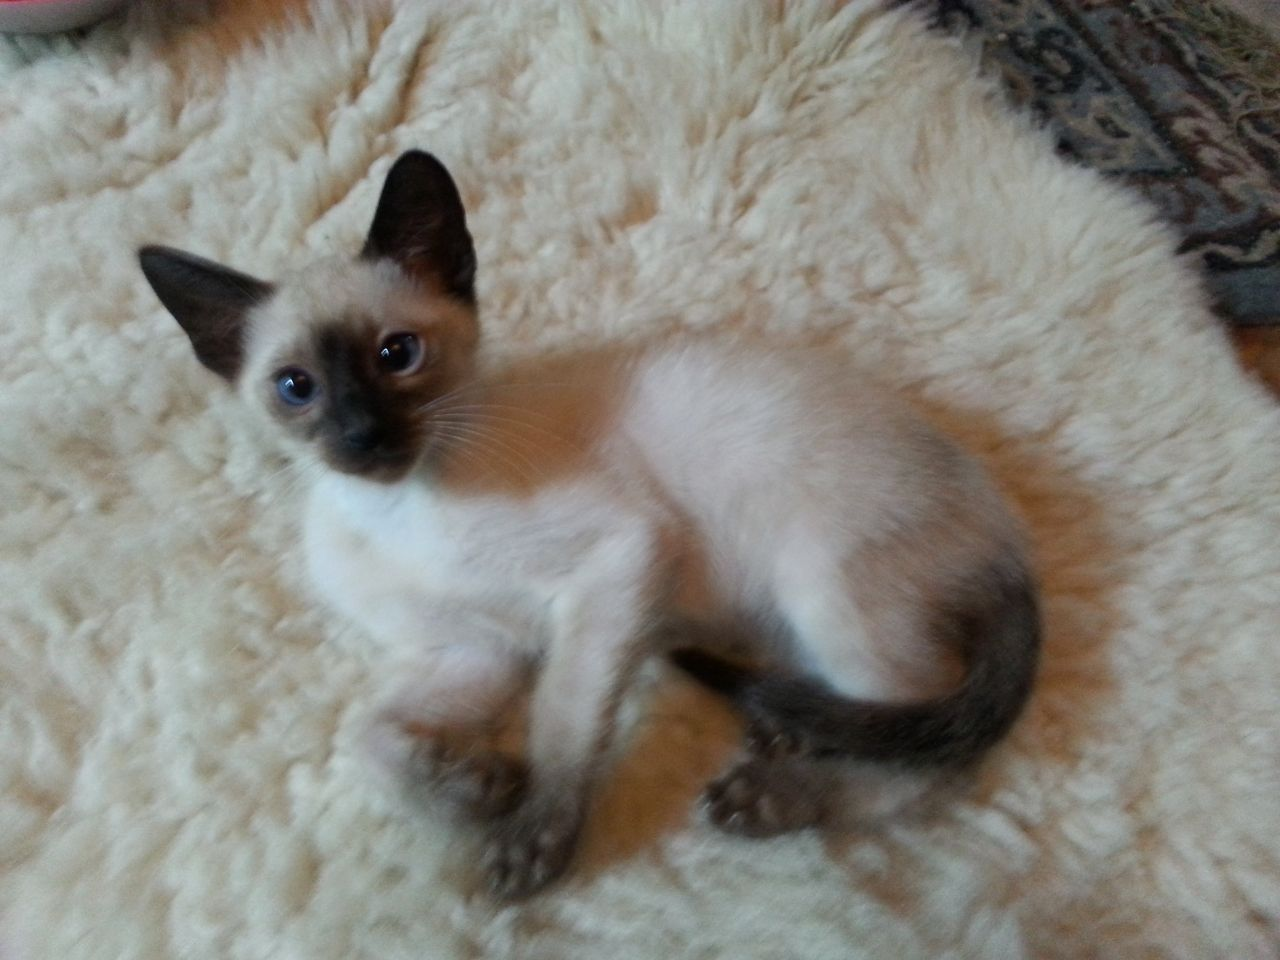 siamese cats | year ago For Sale Cats Bengal Wigan | Balinese Cat ...